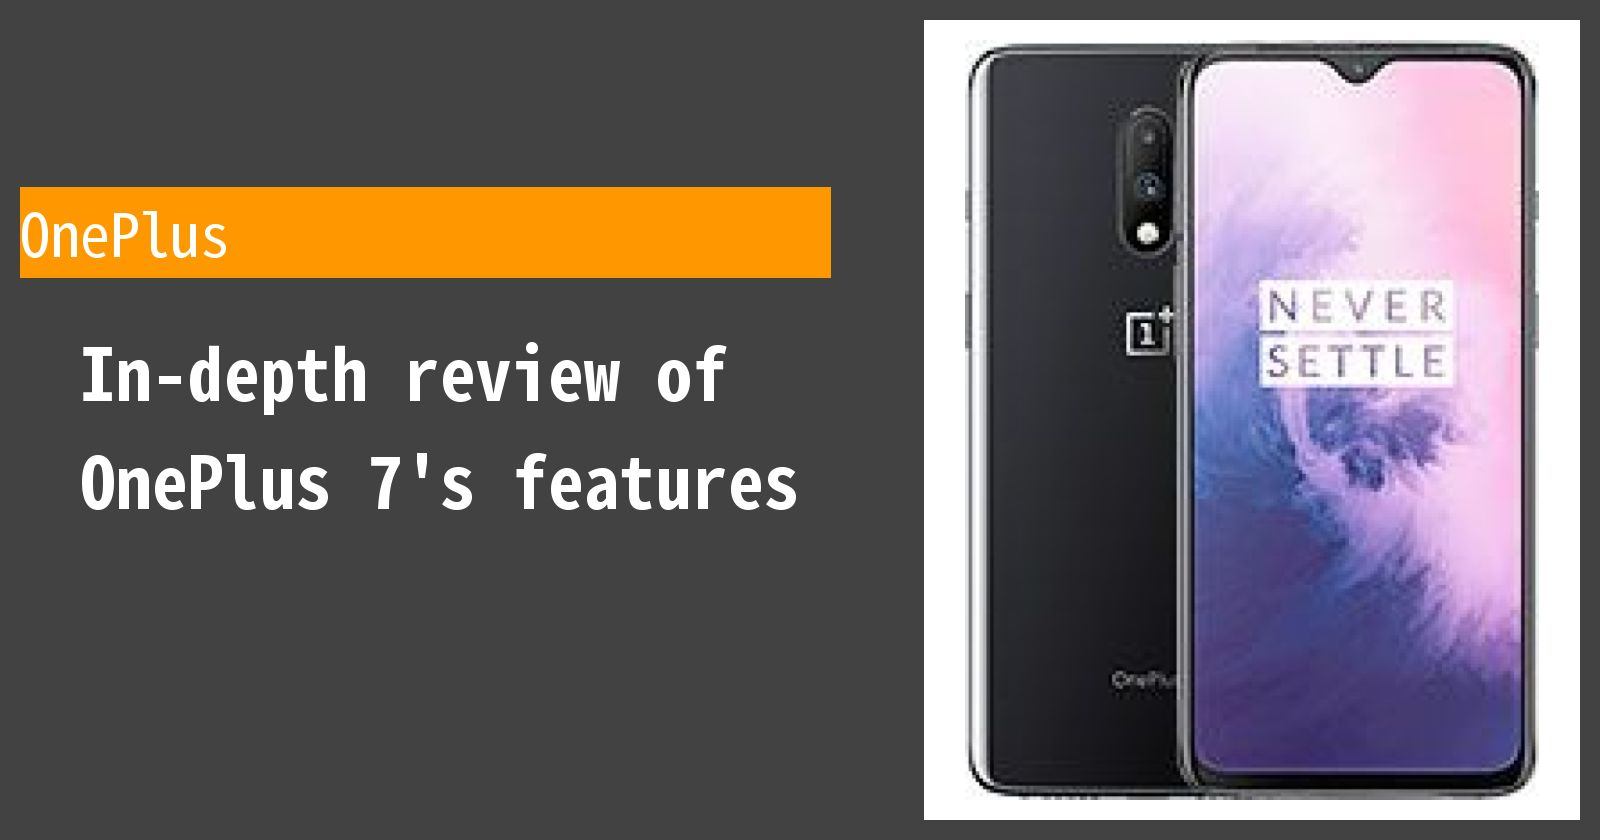 Review of OnePlus 7  Thorough explanation of the pros and